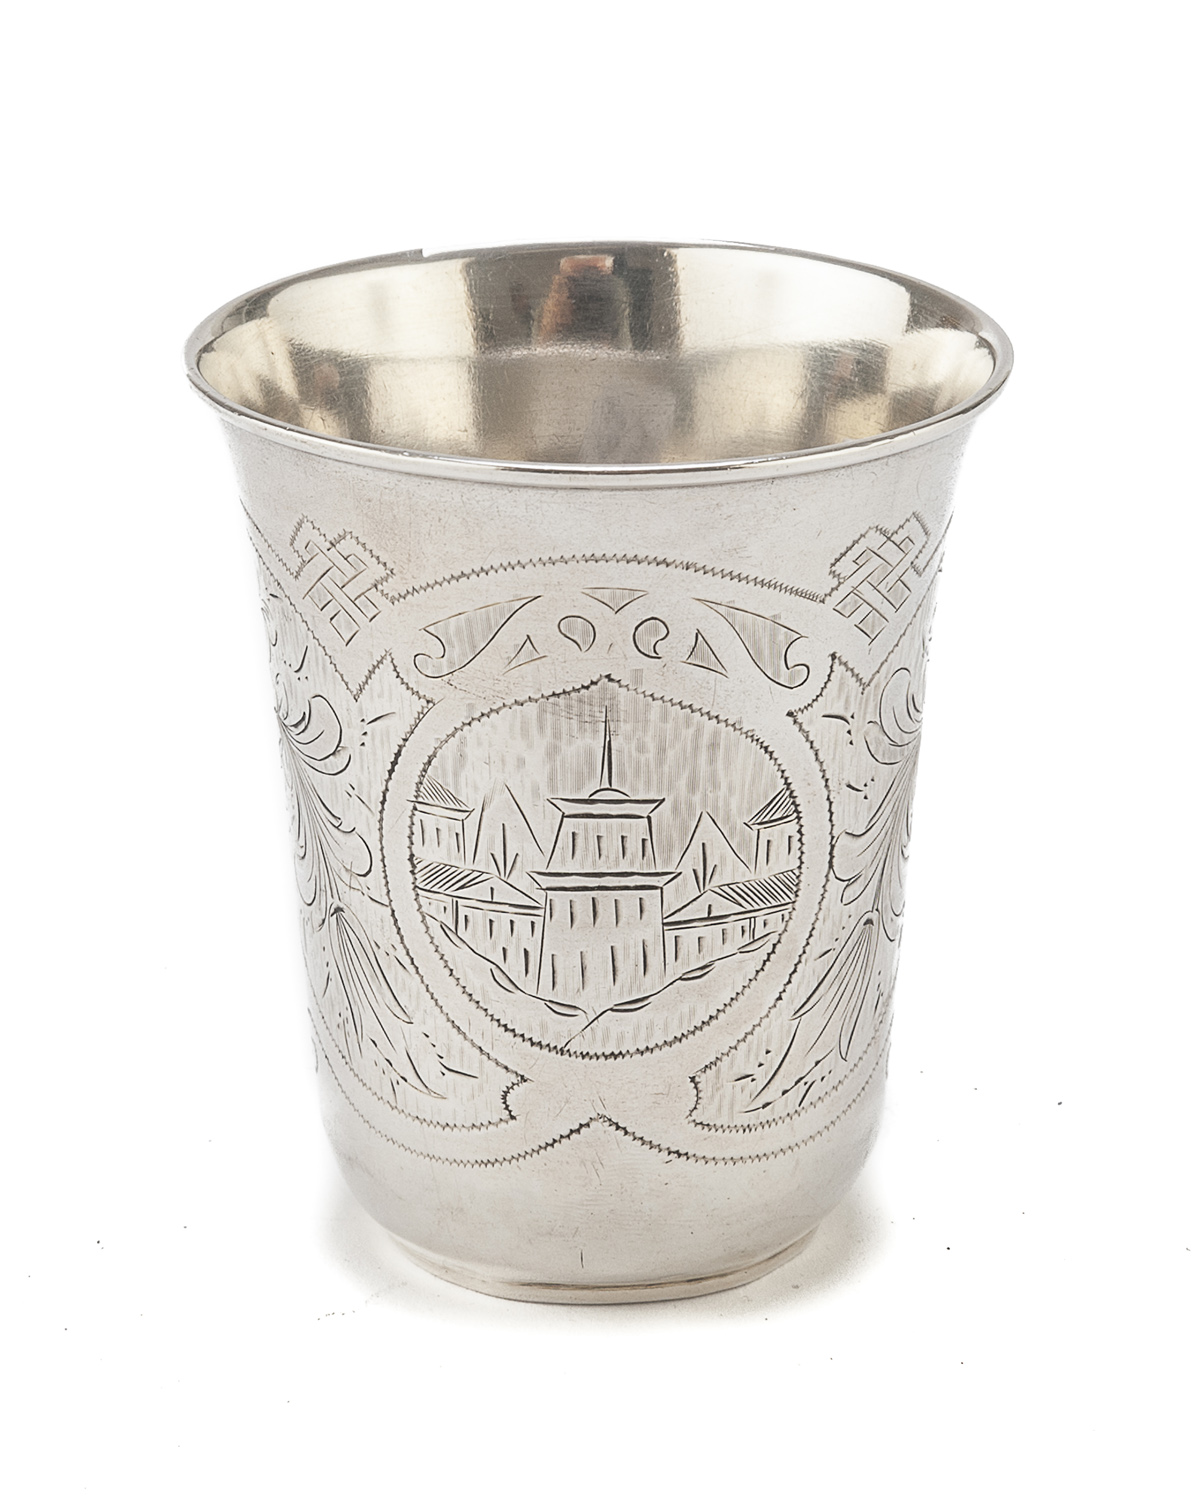 SILVER BEAKER MOSCOW PUNCH 1881